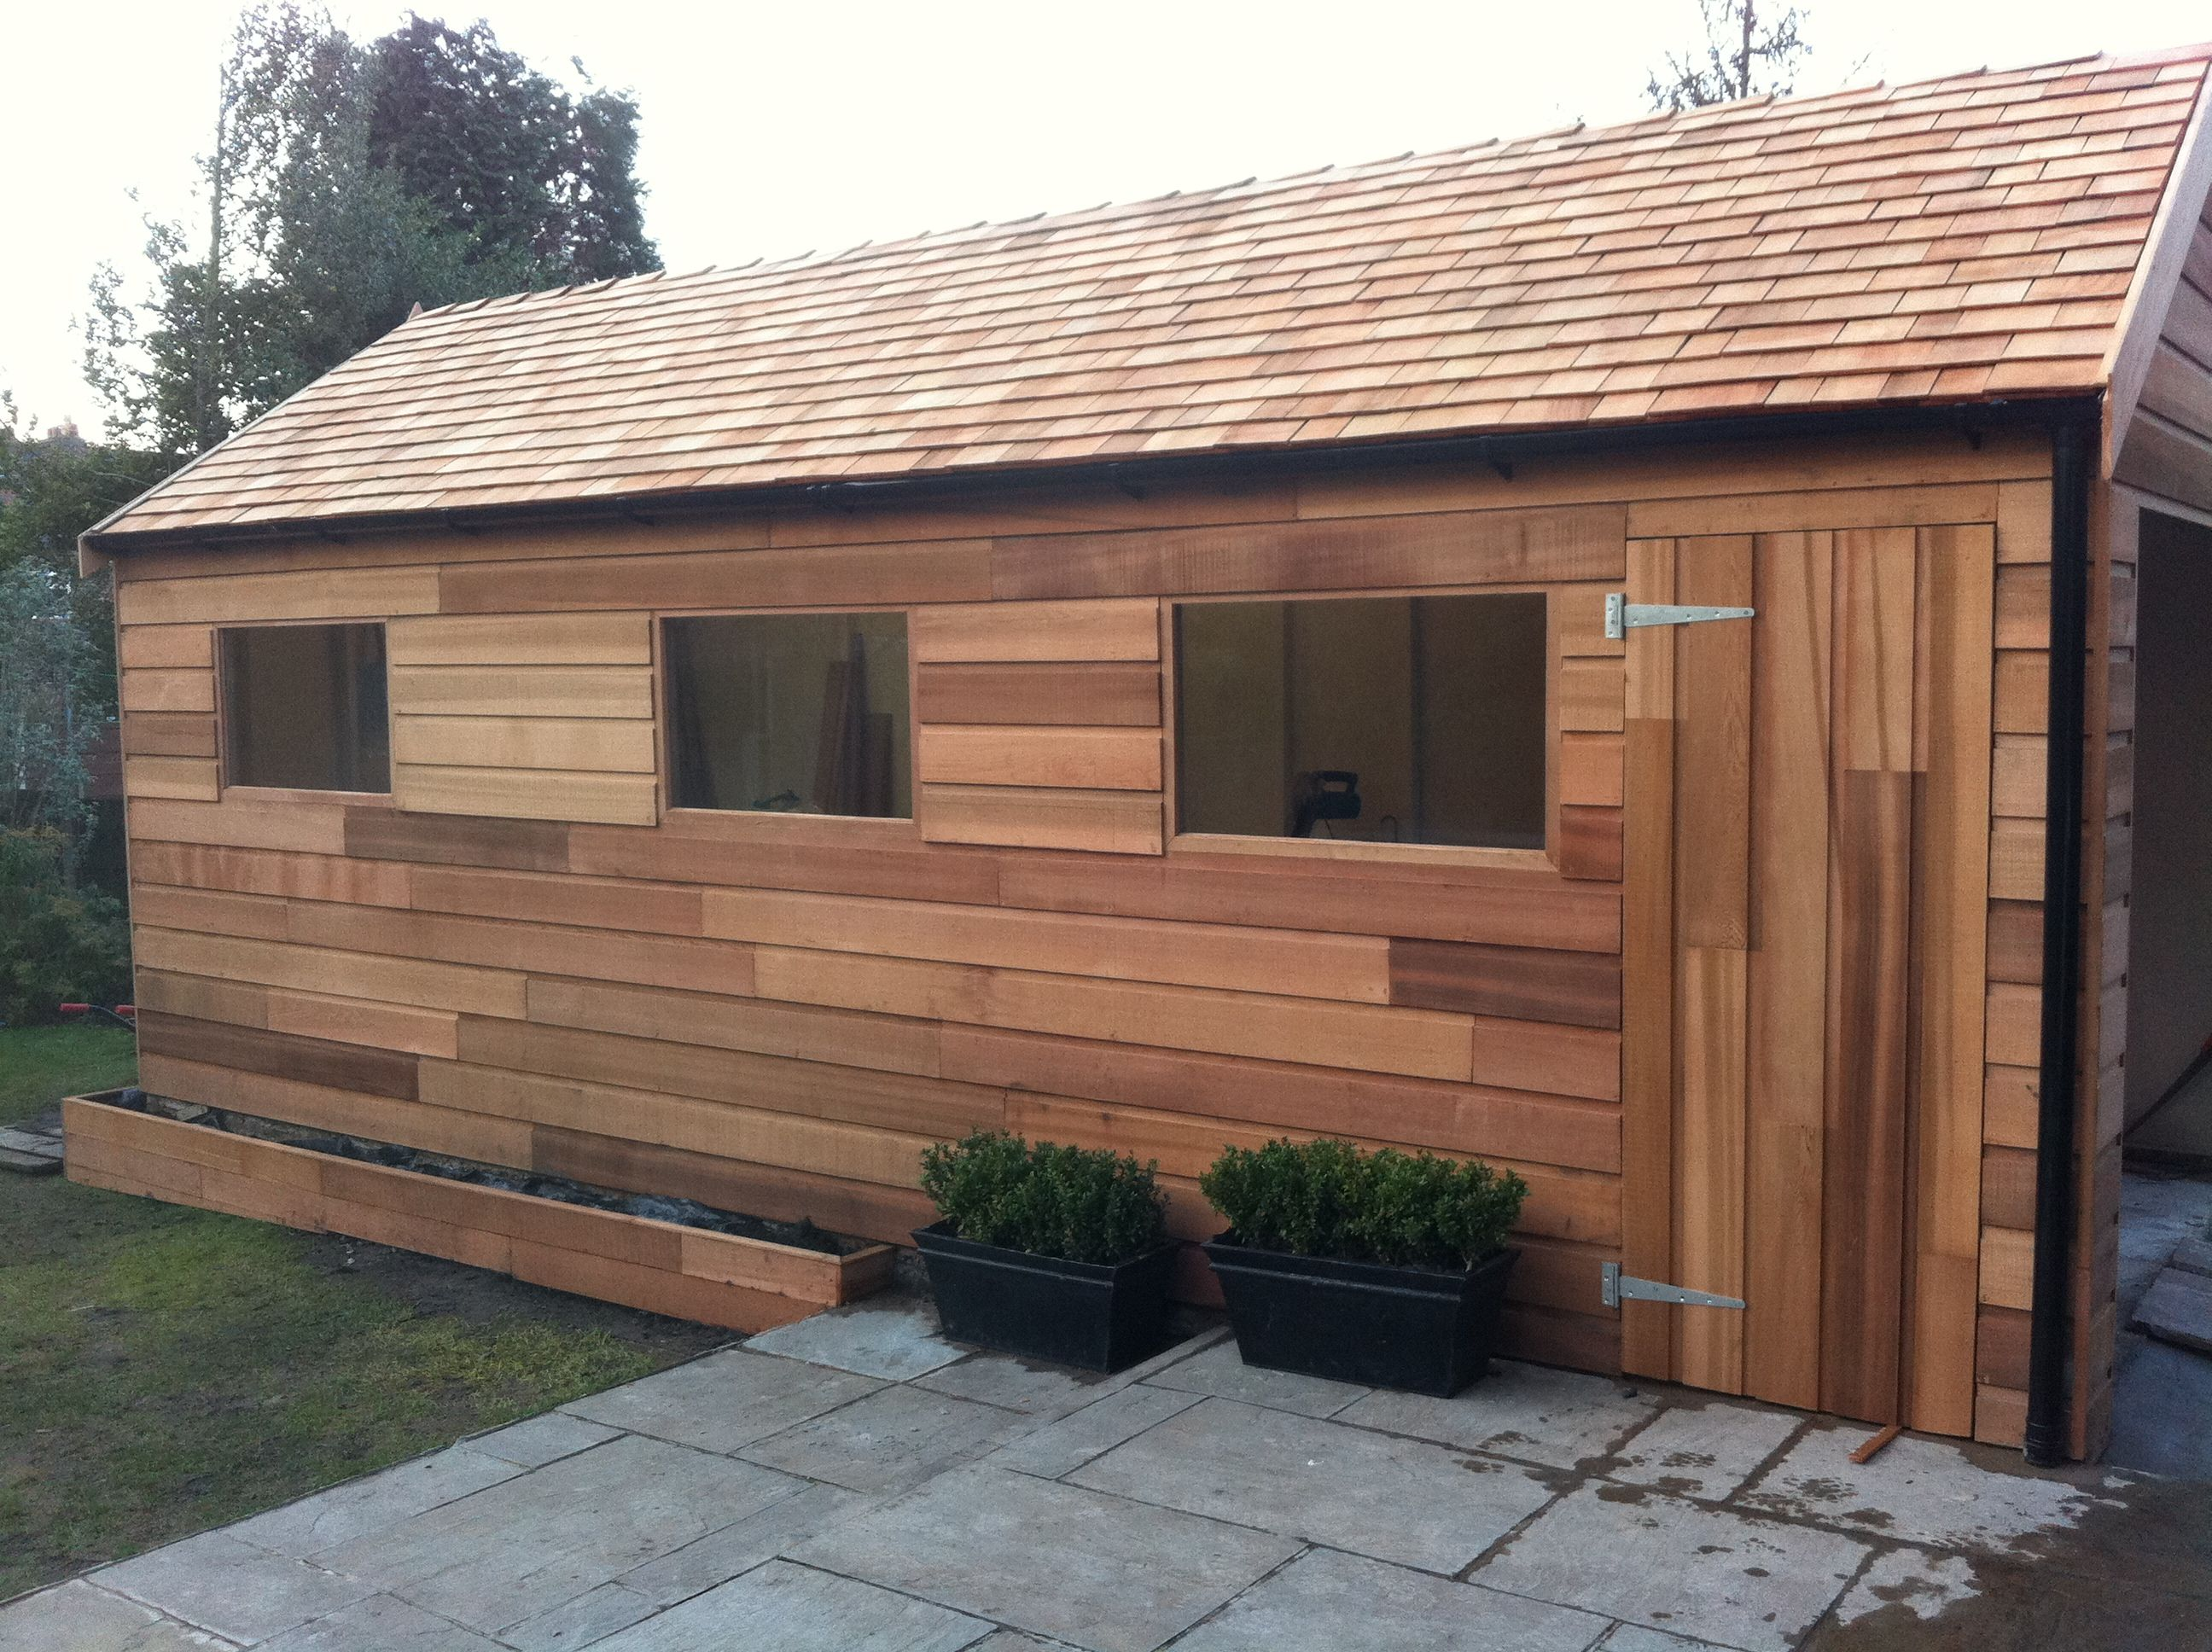 Western Red Cedar Cladding And Roofing Shingles By Darren